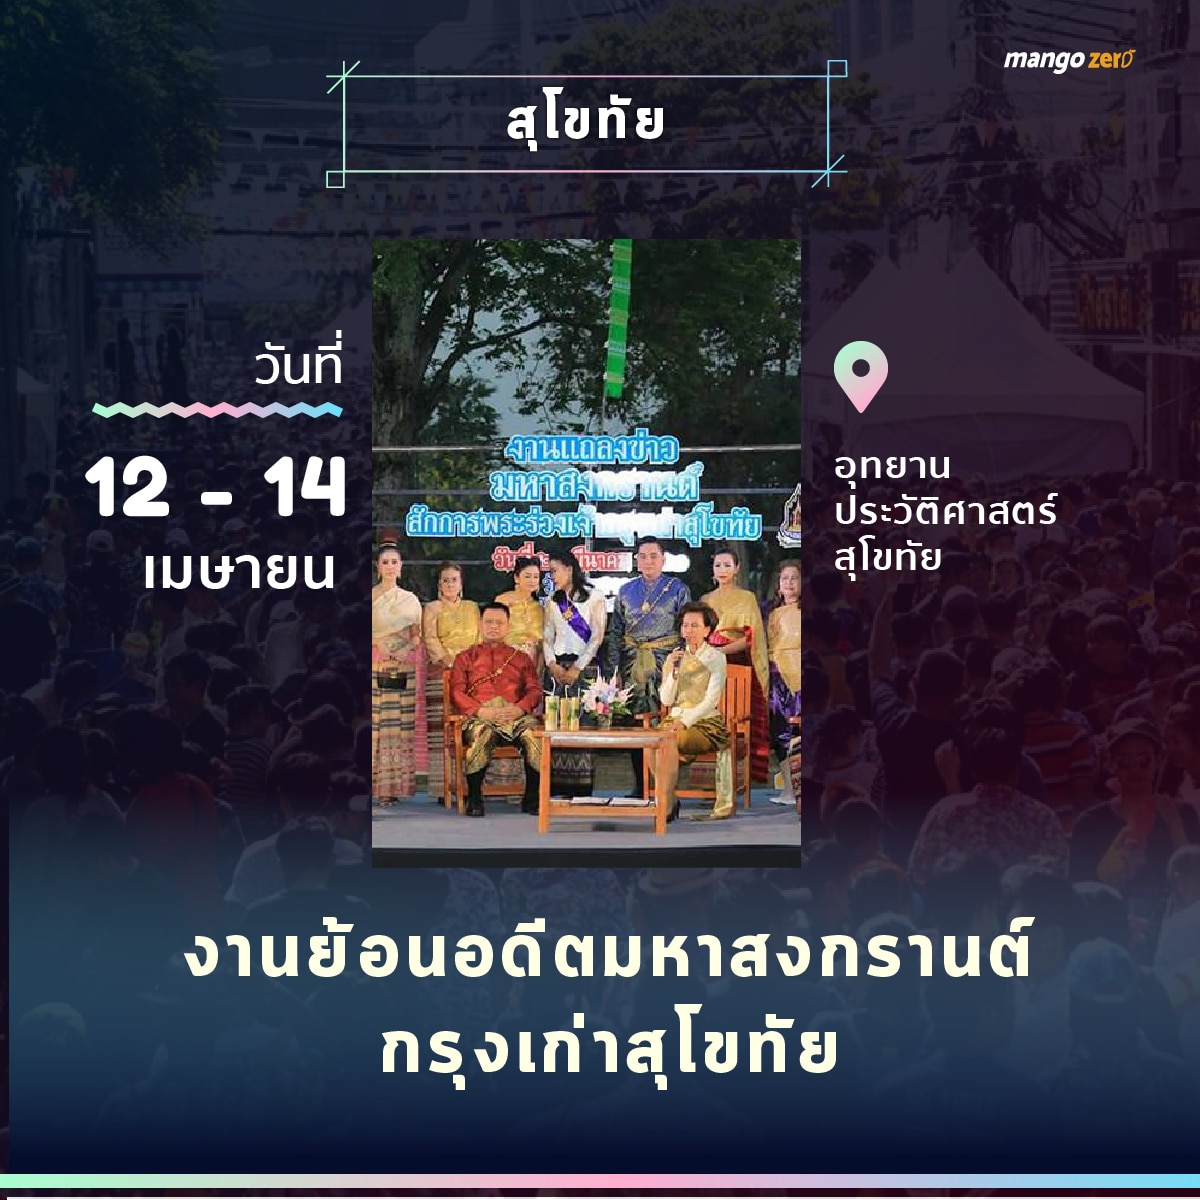 songkran-2018-events-thailand-11-09-10